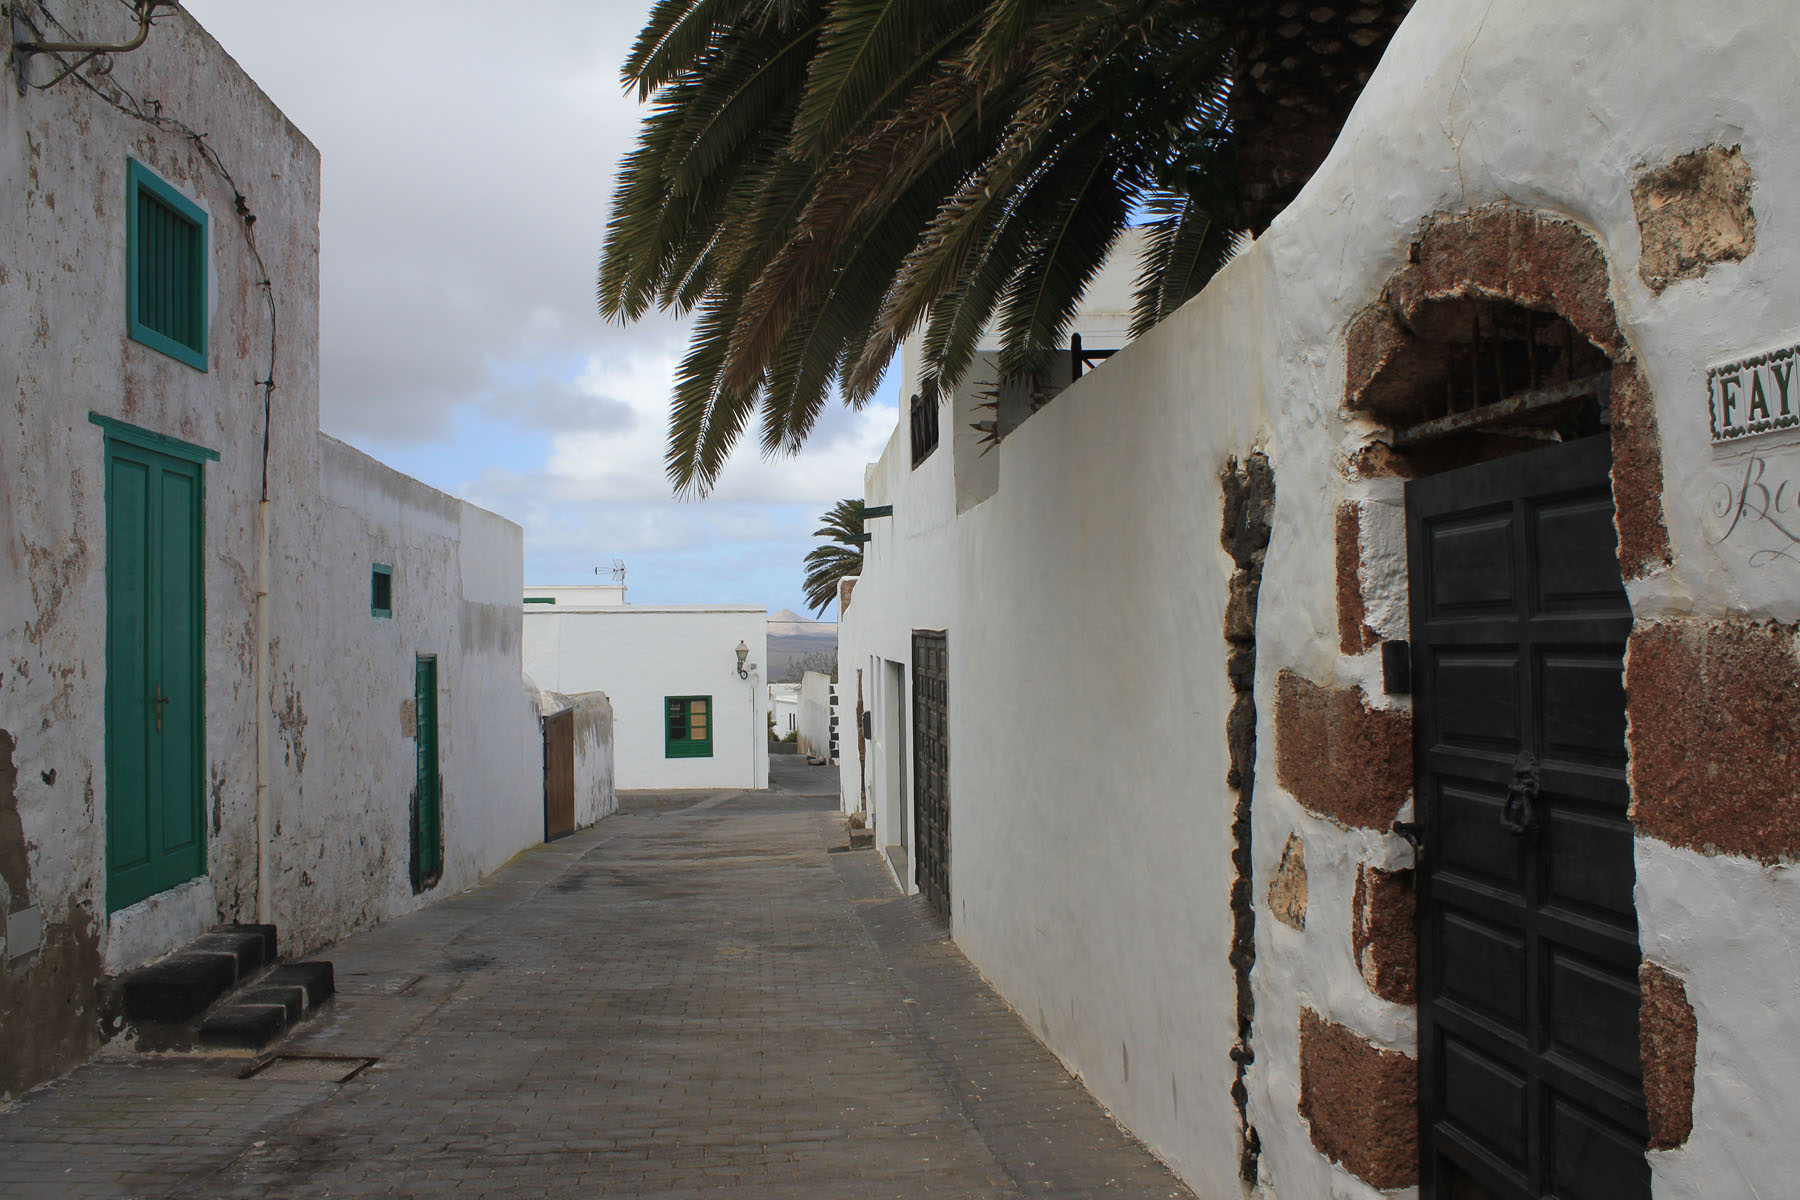 Lanzarote, Teguise, typical street